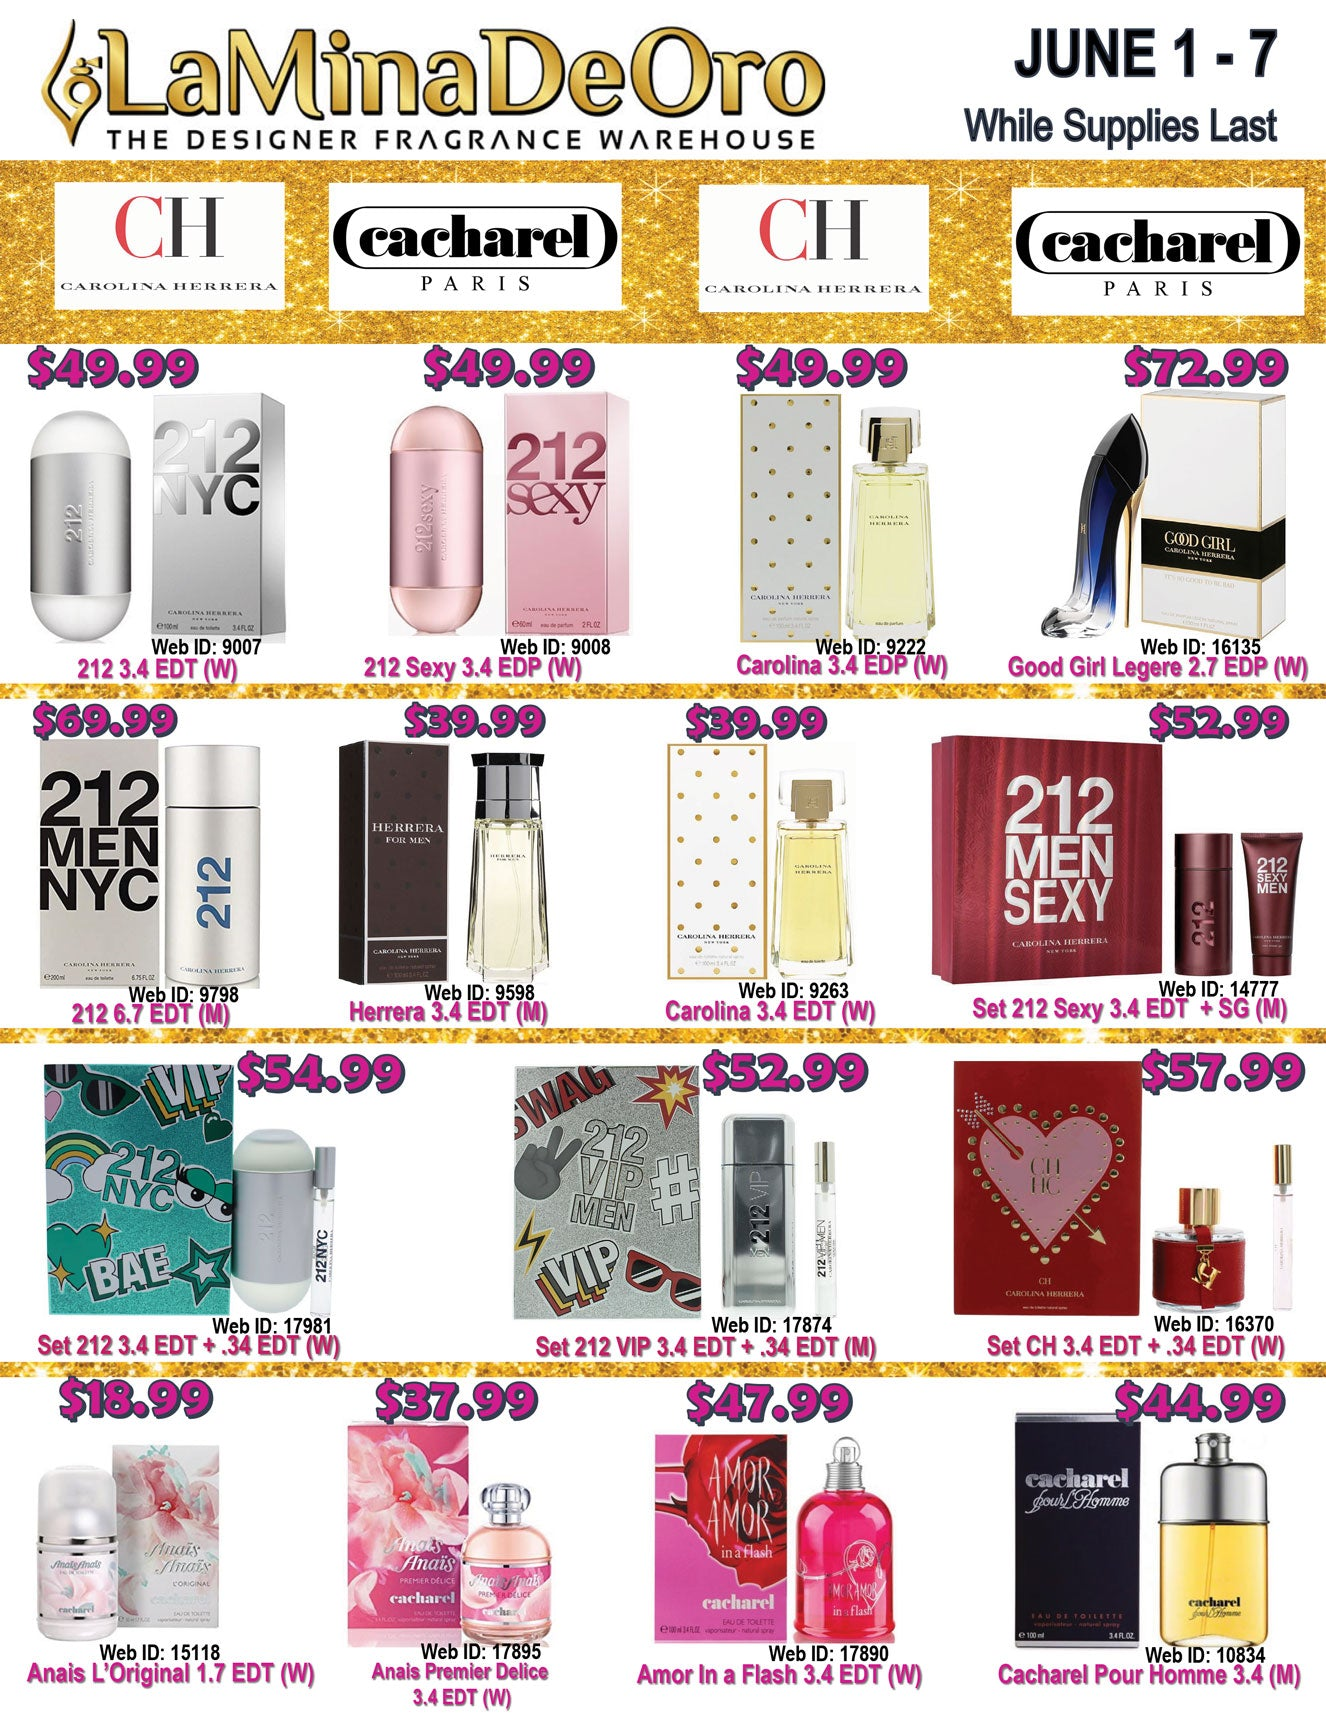 La Mina De Oro Pefume Weekly Fragrance Specials, Carolina Herrera fragrances and Cacharel perfume on sale